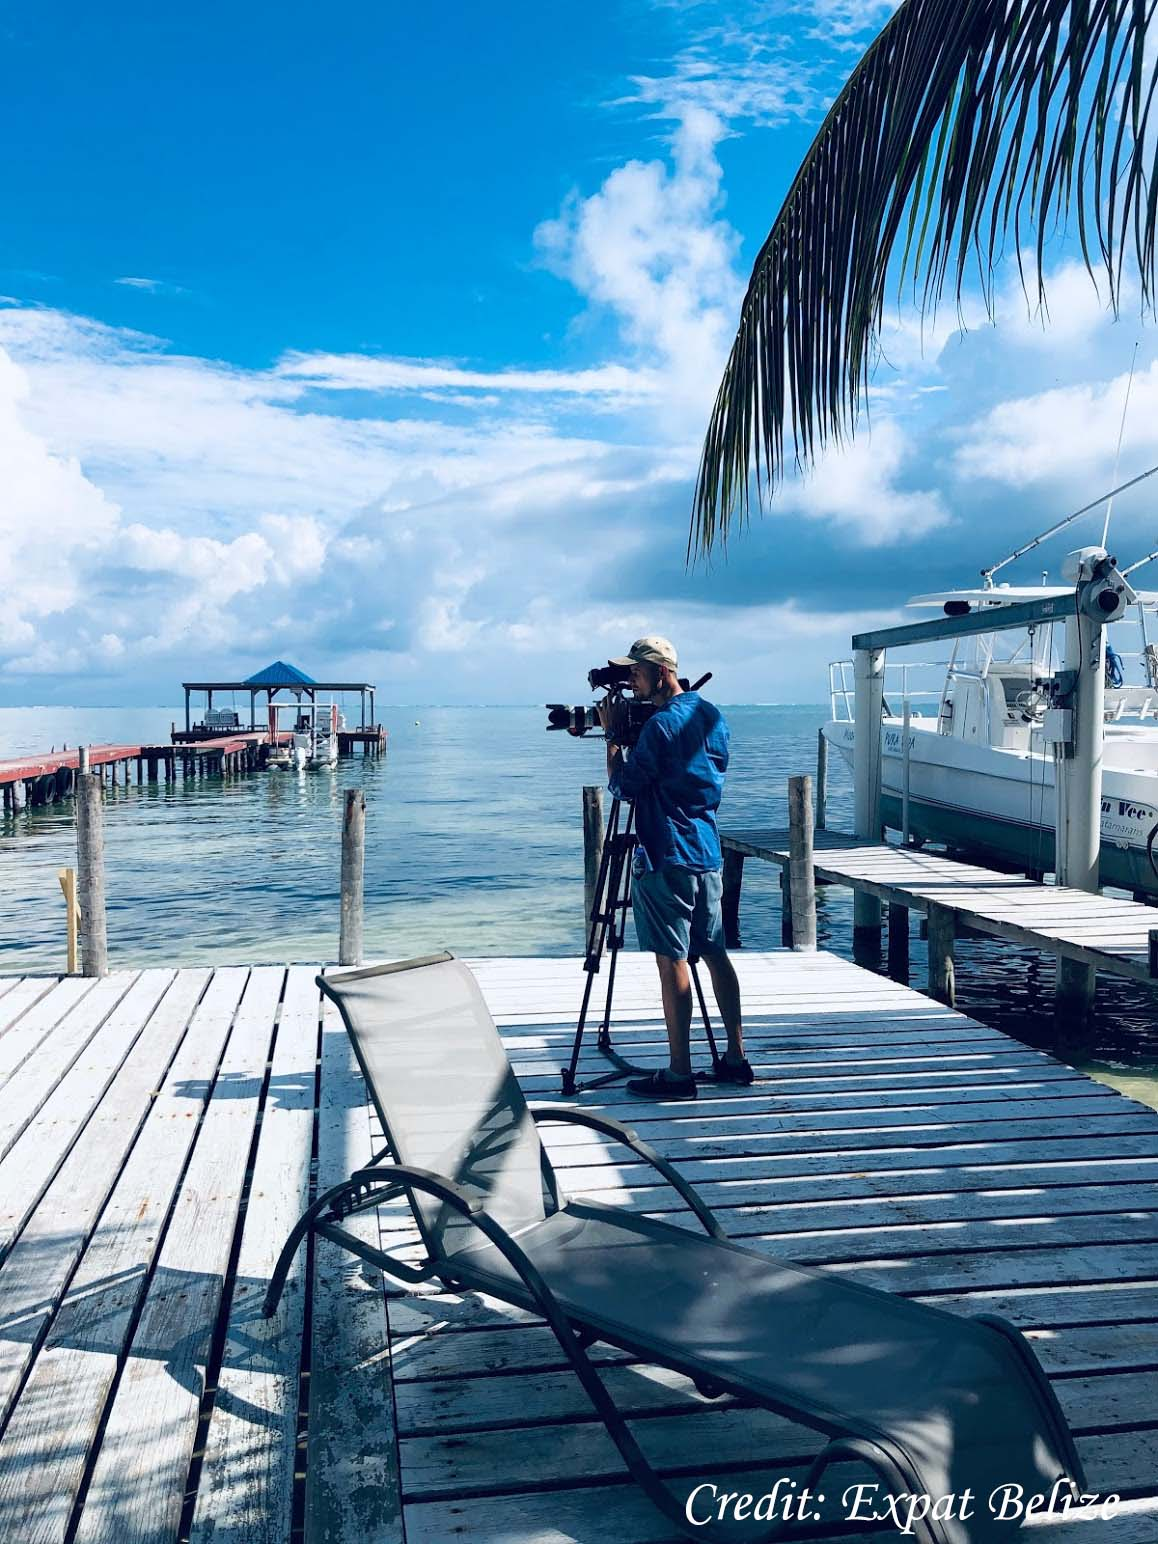 Belize Realtor Macarena Rose to share her passion for beach front island living on HGTV's Beach Around the World